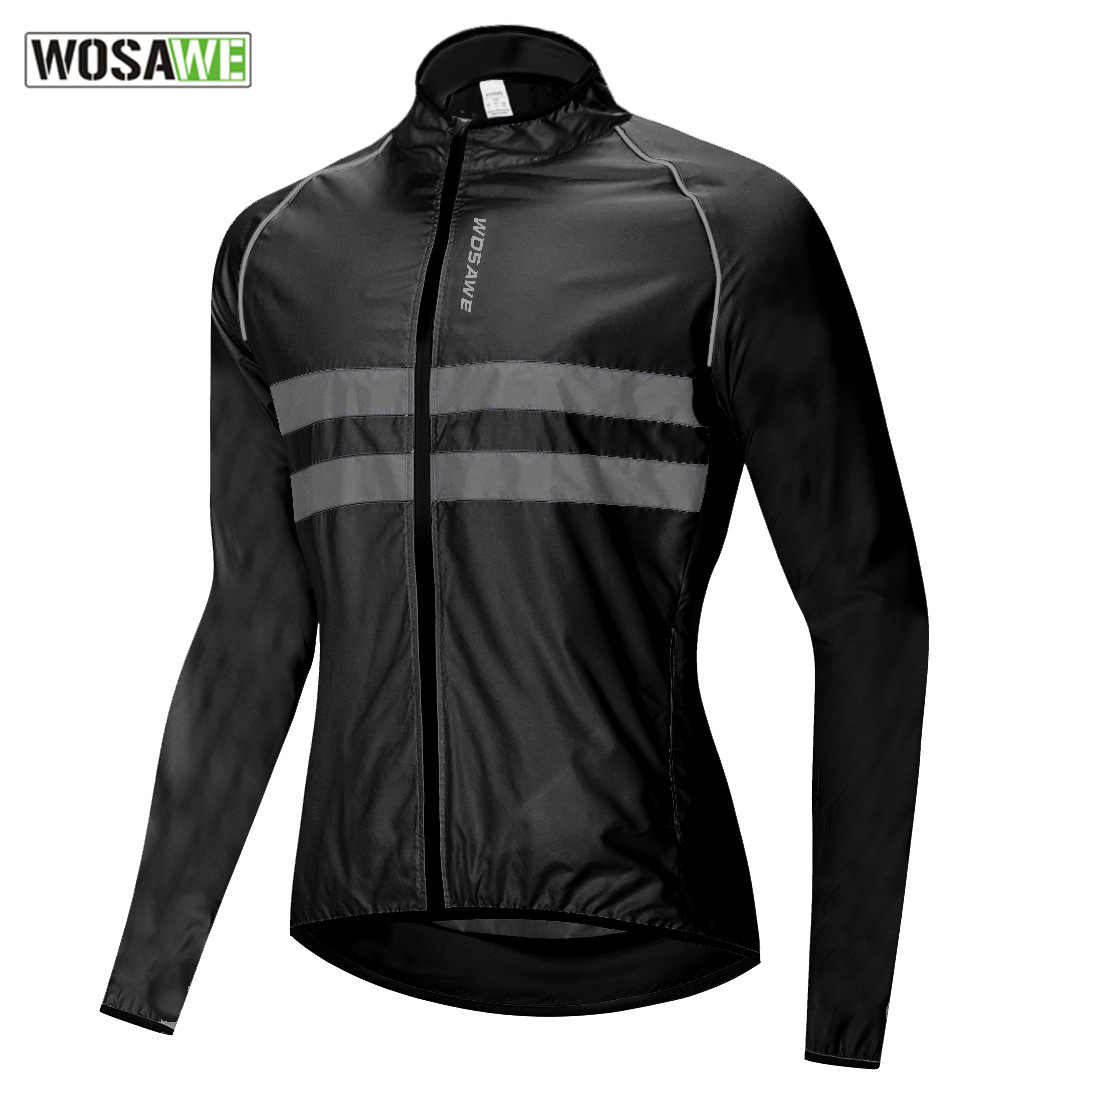 WOSAWE Ultralight Reflecterende mannen Fietsen Jacket Lange Waterdicht Winddicht Road Mountainbike MTB Jassen Fiets Windbreaker